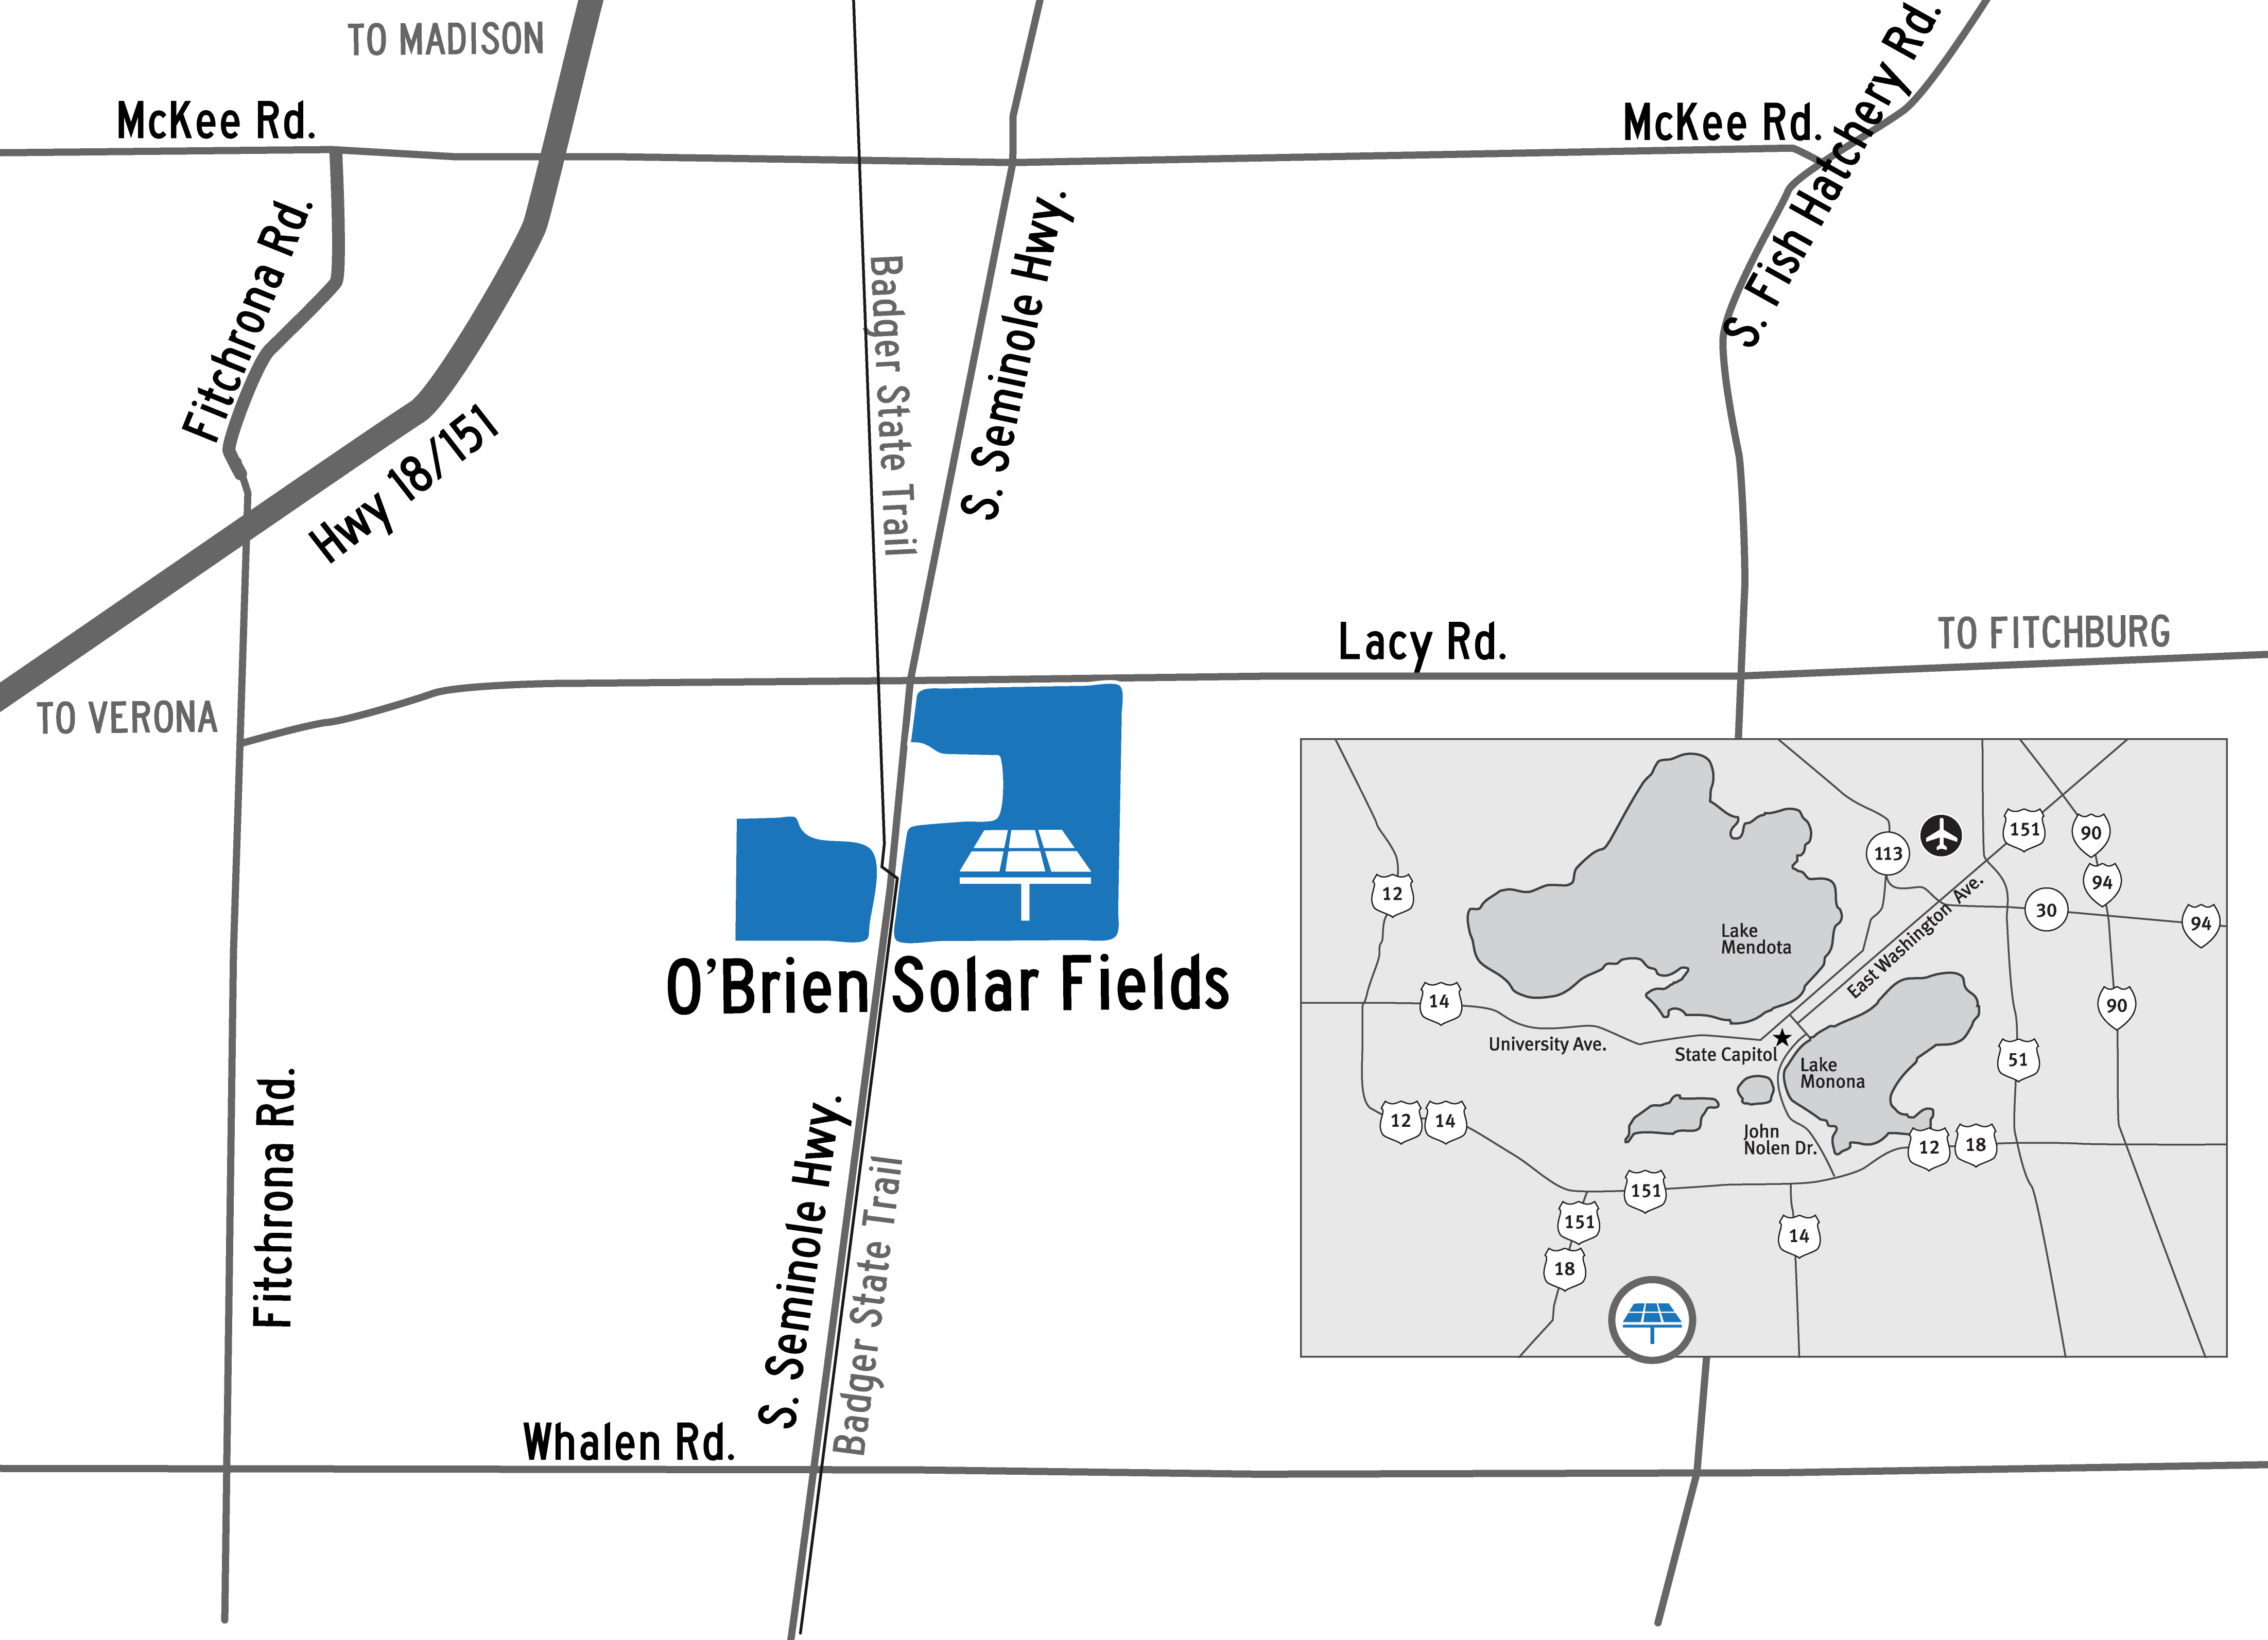 2020-01-31-obrien-solar-fields-map-with-madison-01